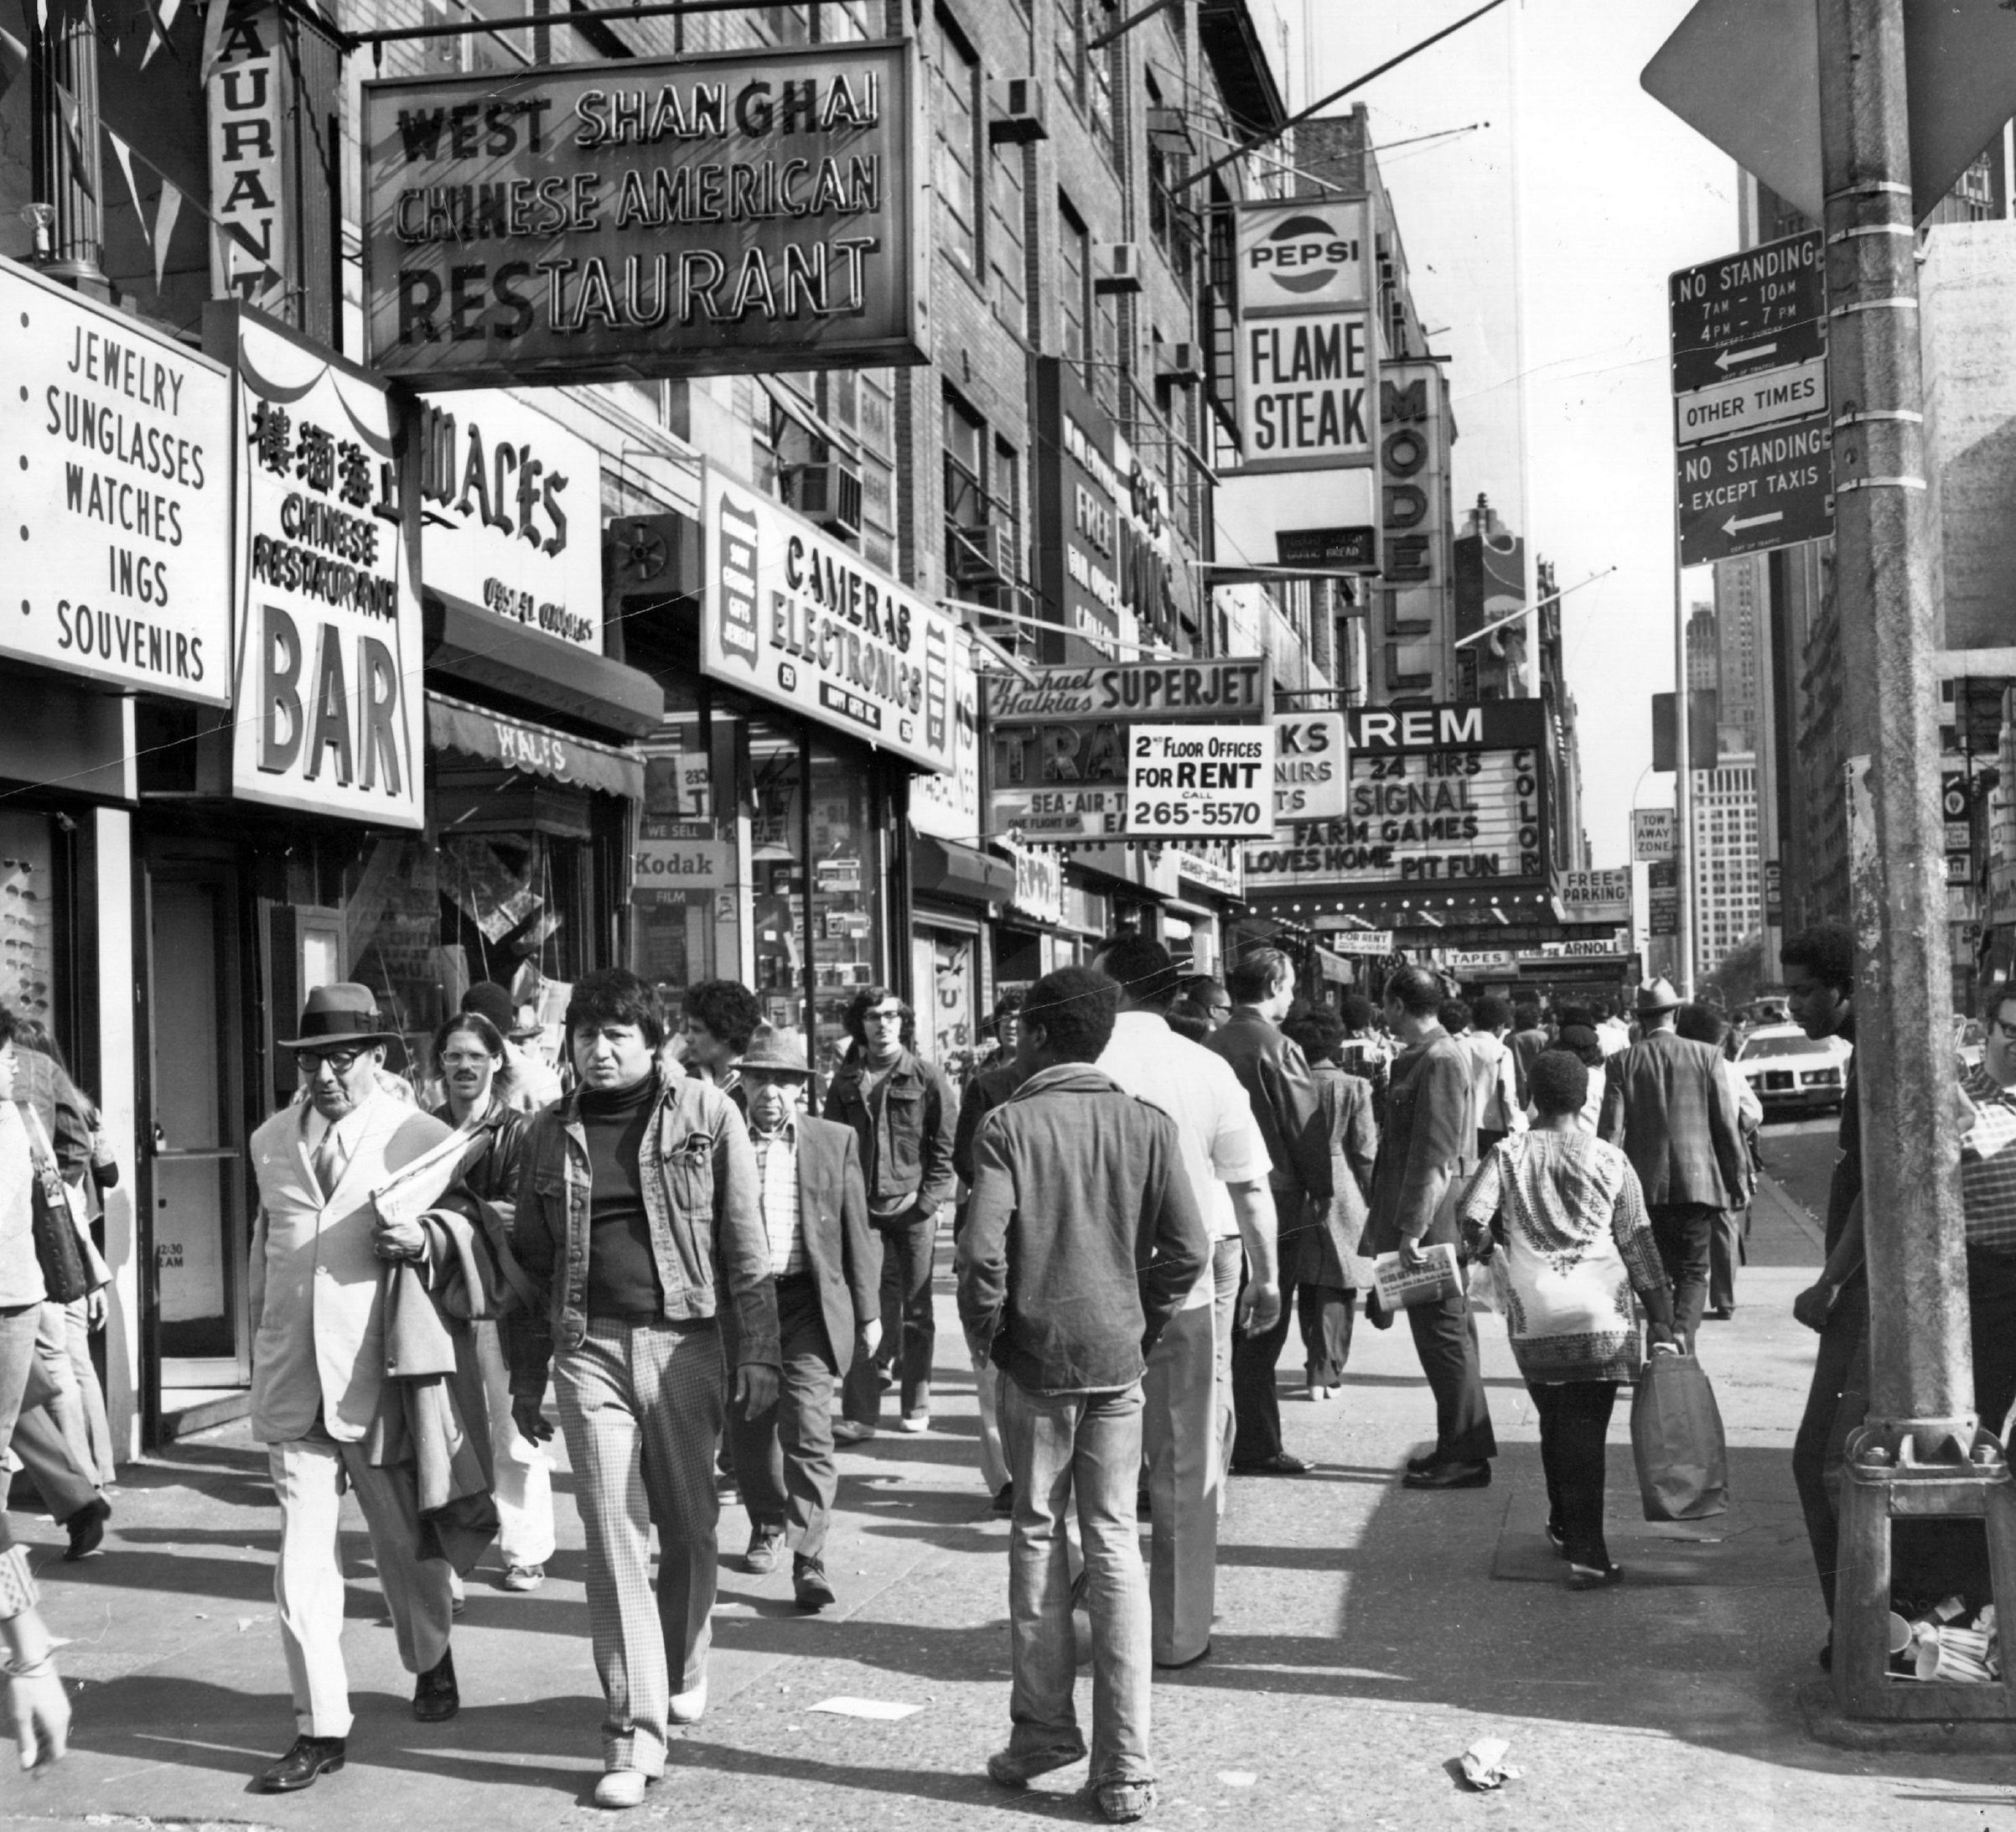 The Times Square area of New York City in 1975